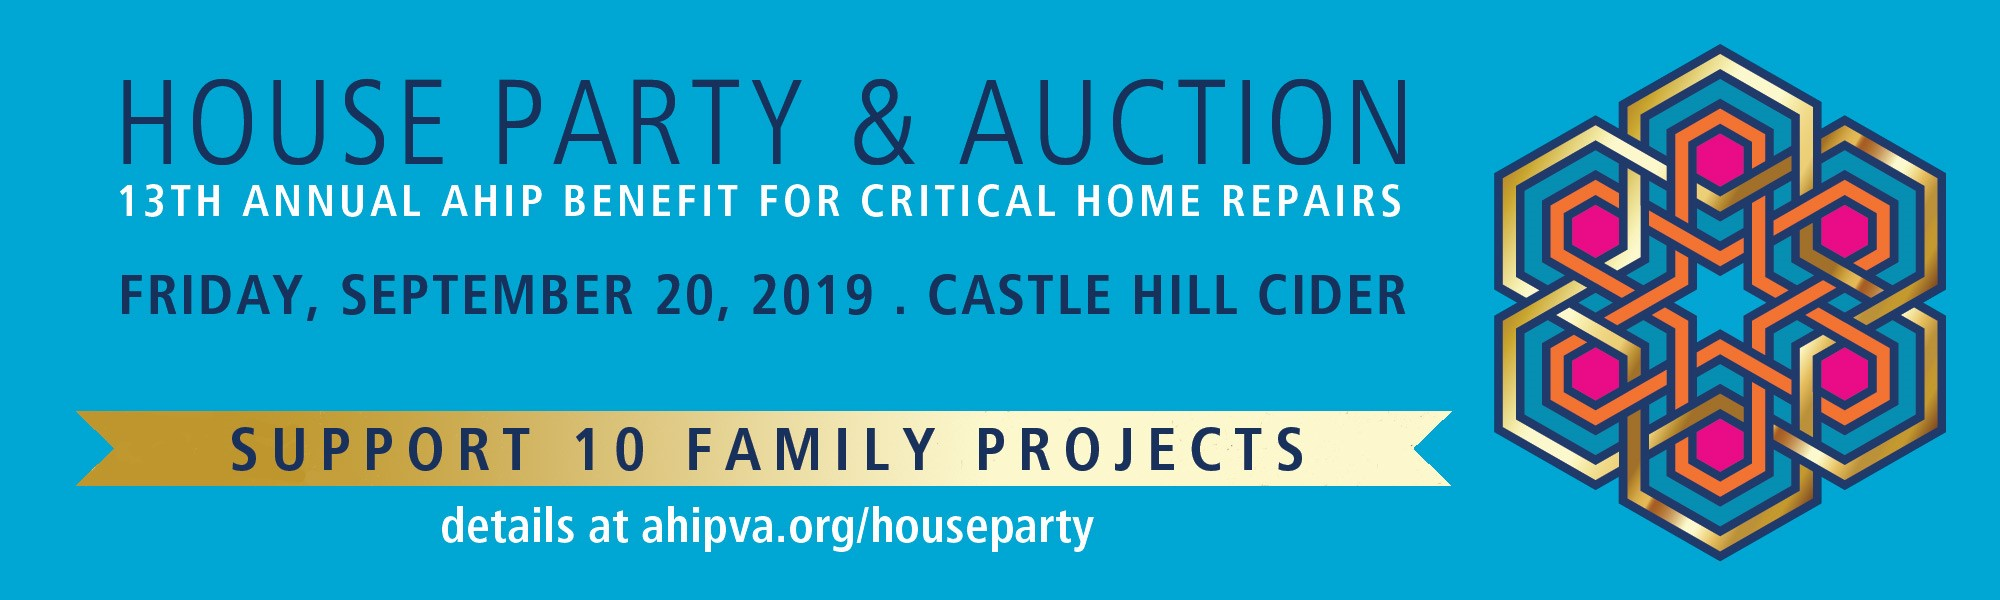 Support 10 Local Family Projects during House Party